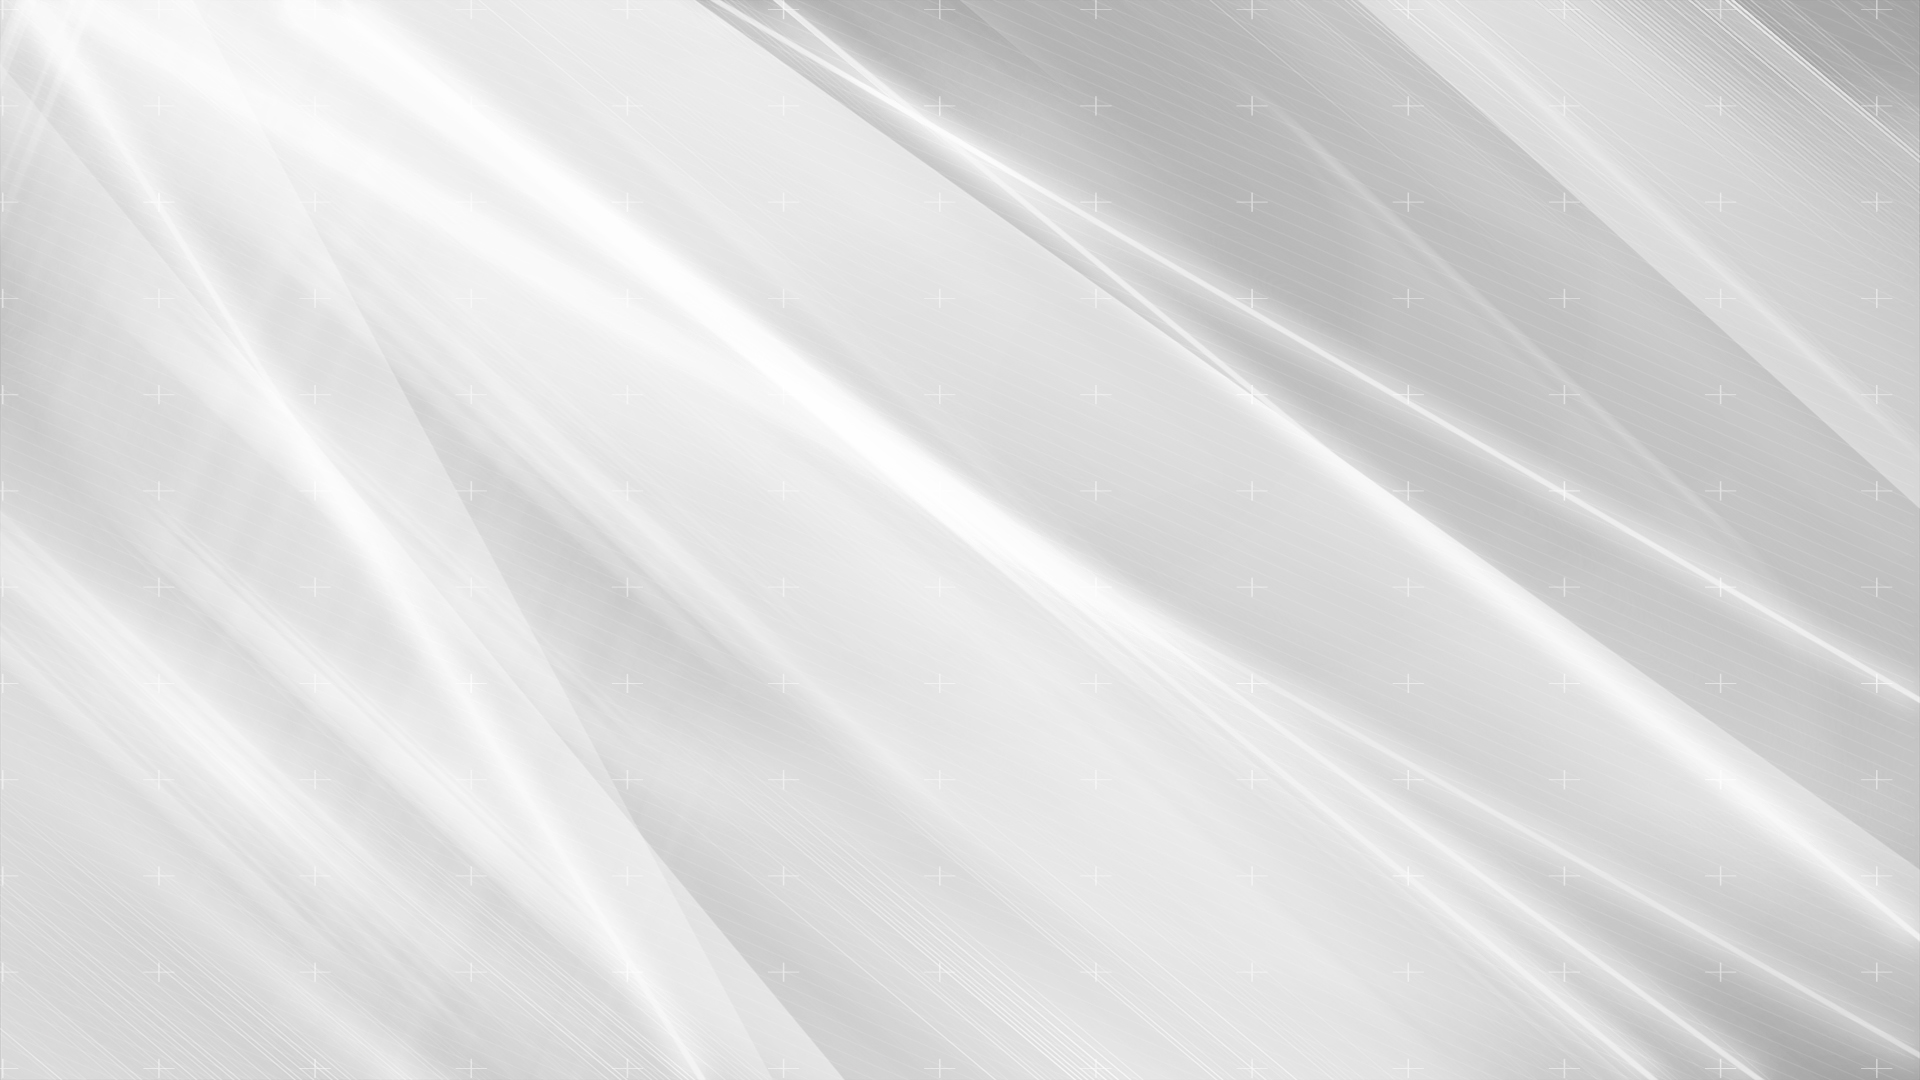 white-abstract-75-wallpaper-background-hd